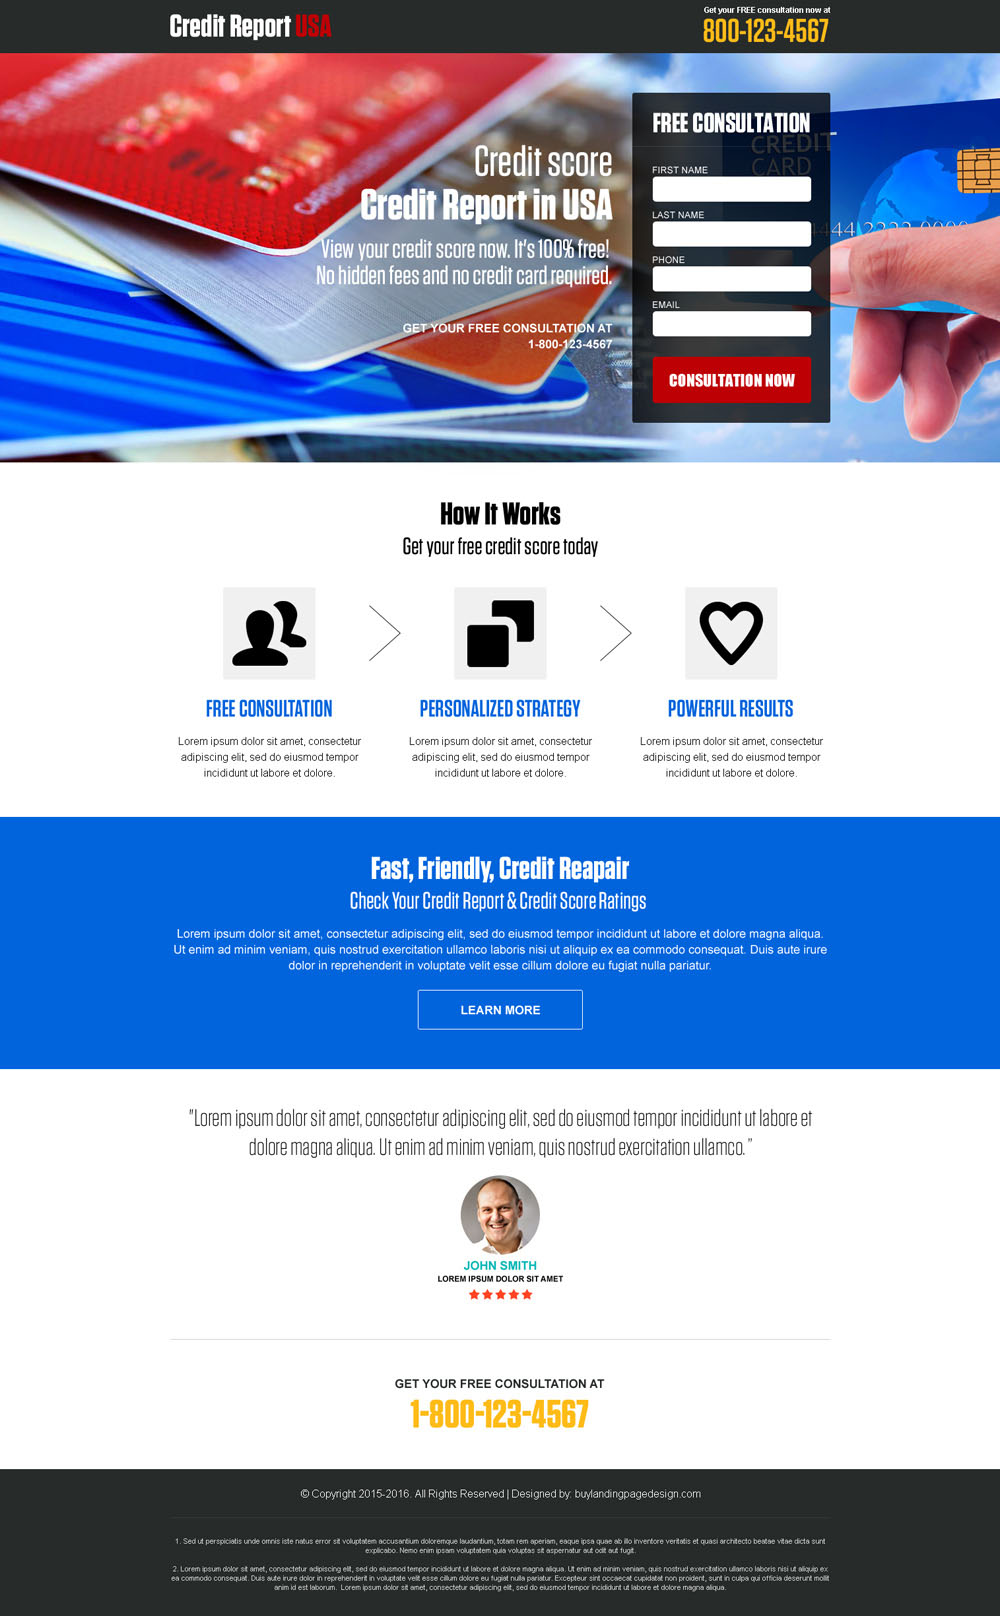 credit-report-and-credit-score-free-consultation-usa-lead-gen-converting-landing-page-design-004